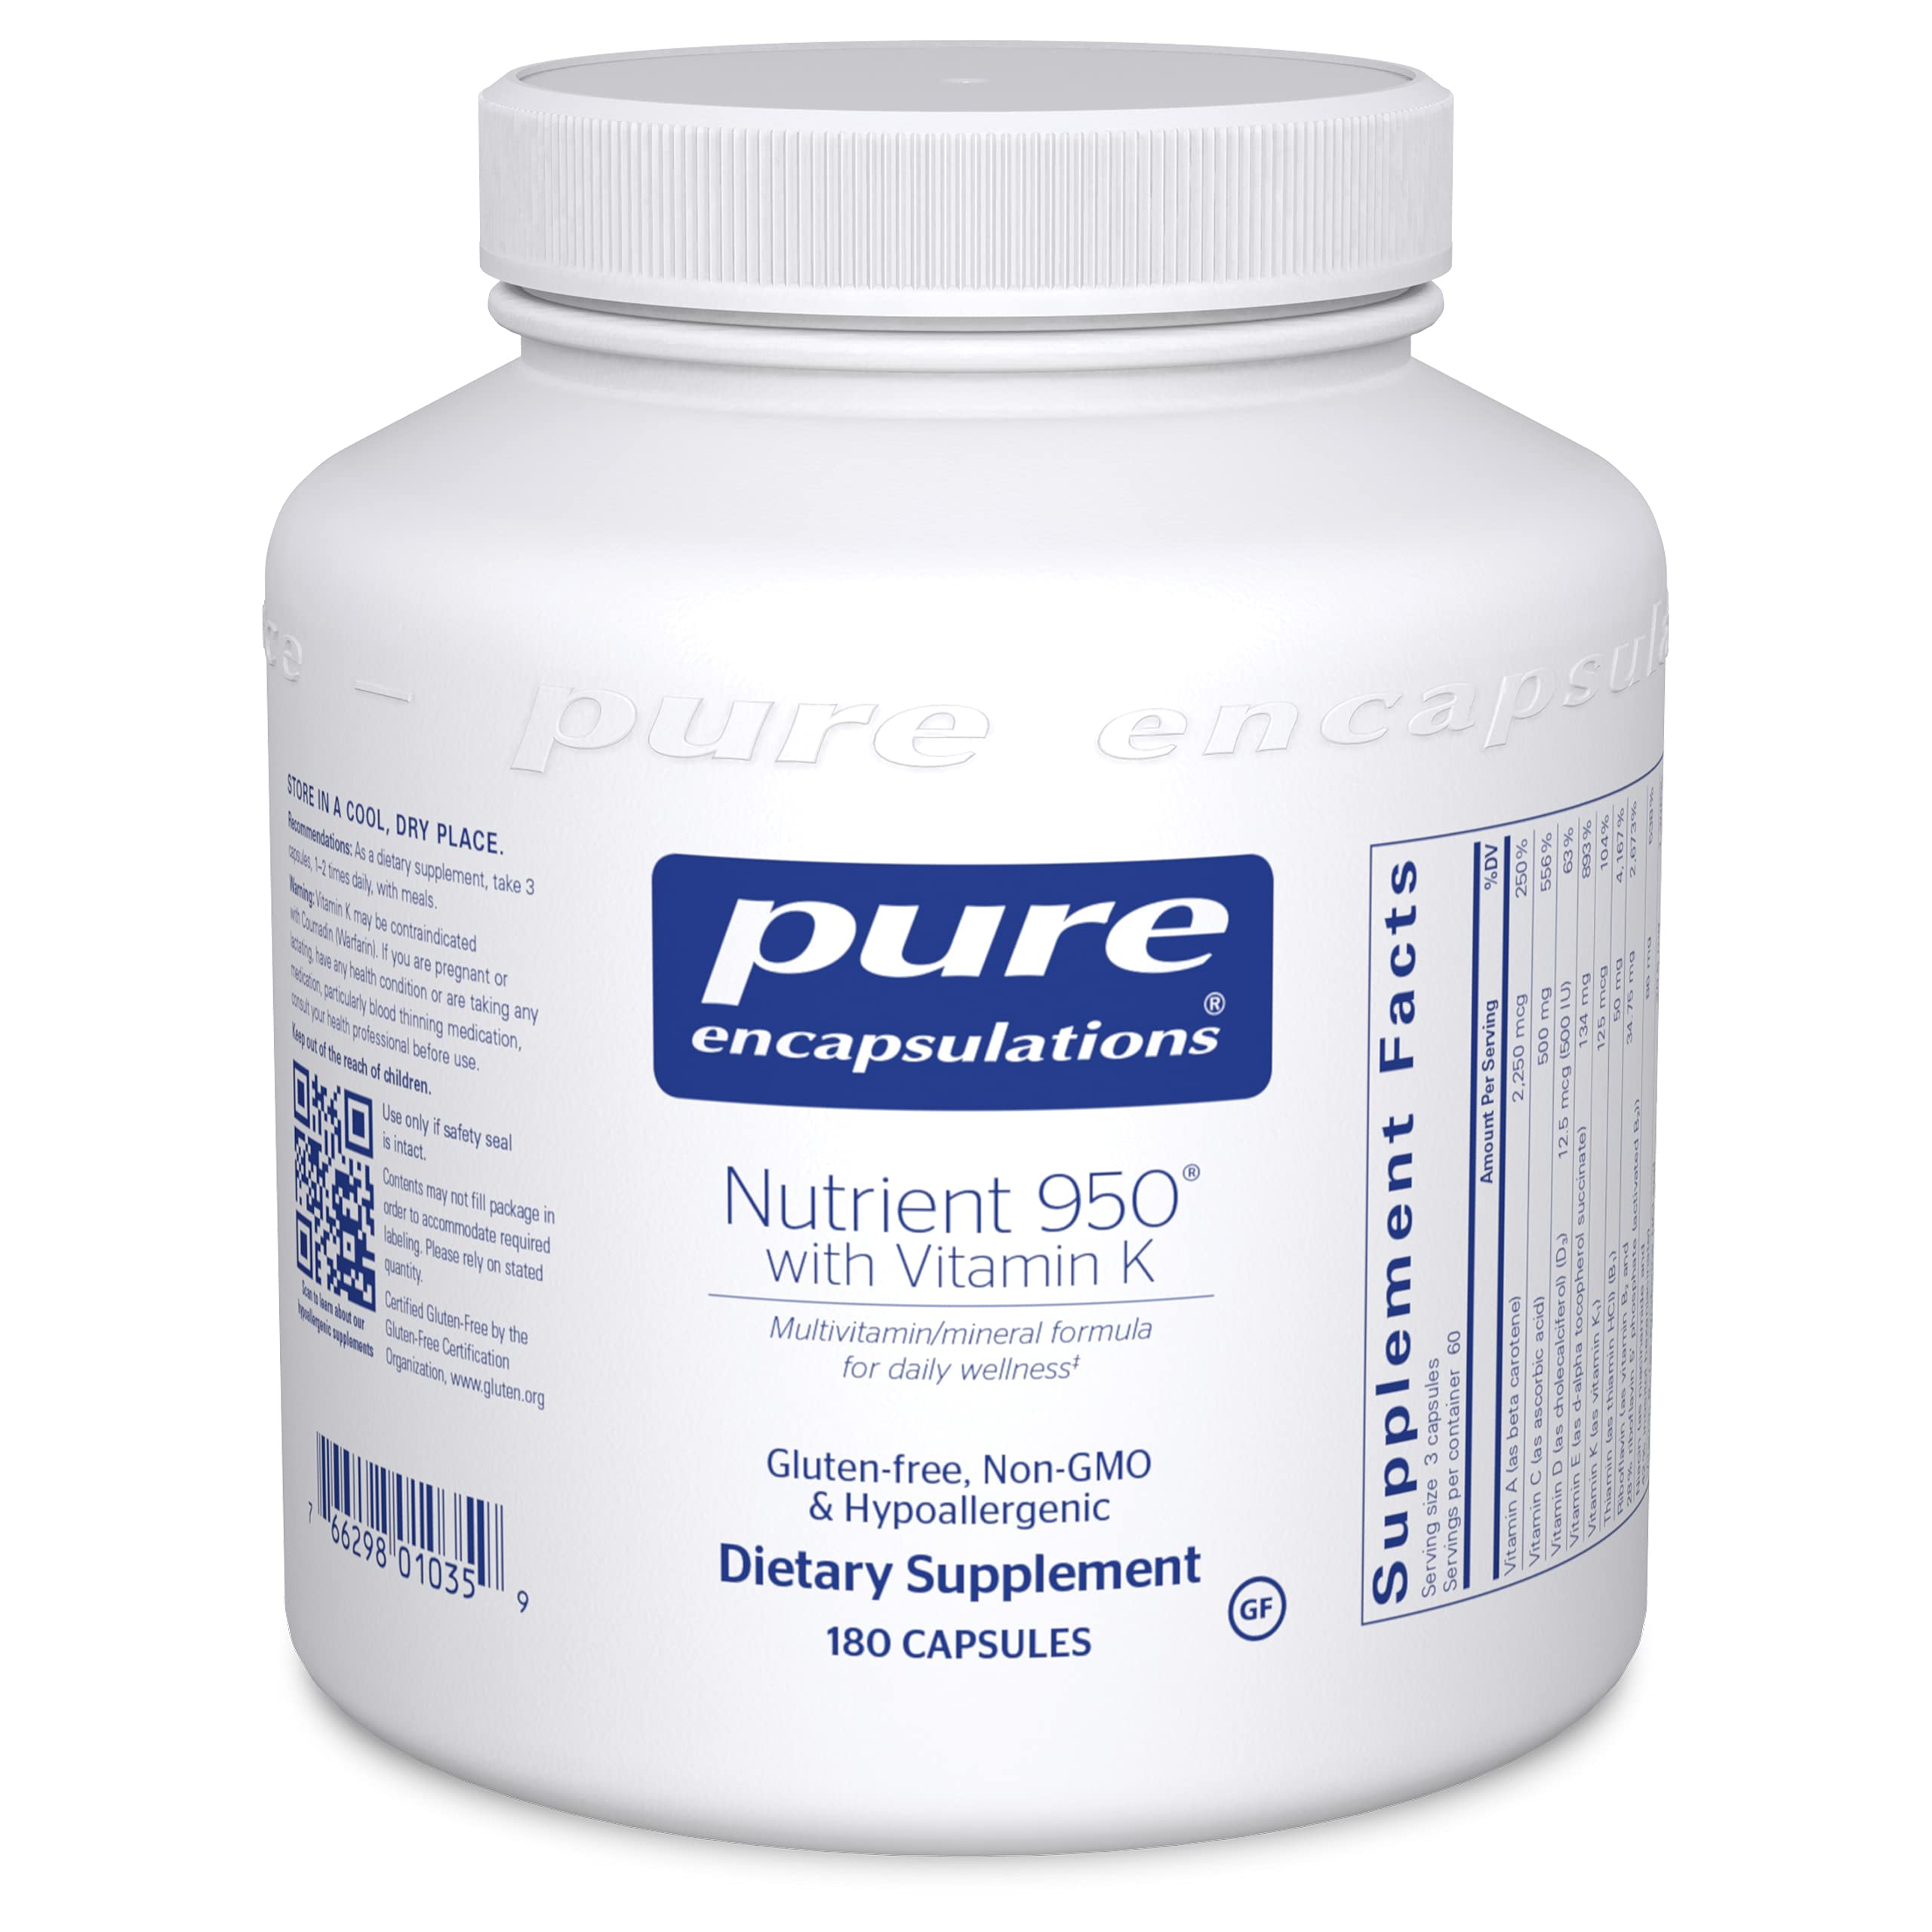 Pure Encapsulations - Nutrient 950 with Vitamin K - Vitamin Mineral Formula for Optimal Health - 180 Capsules